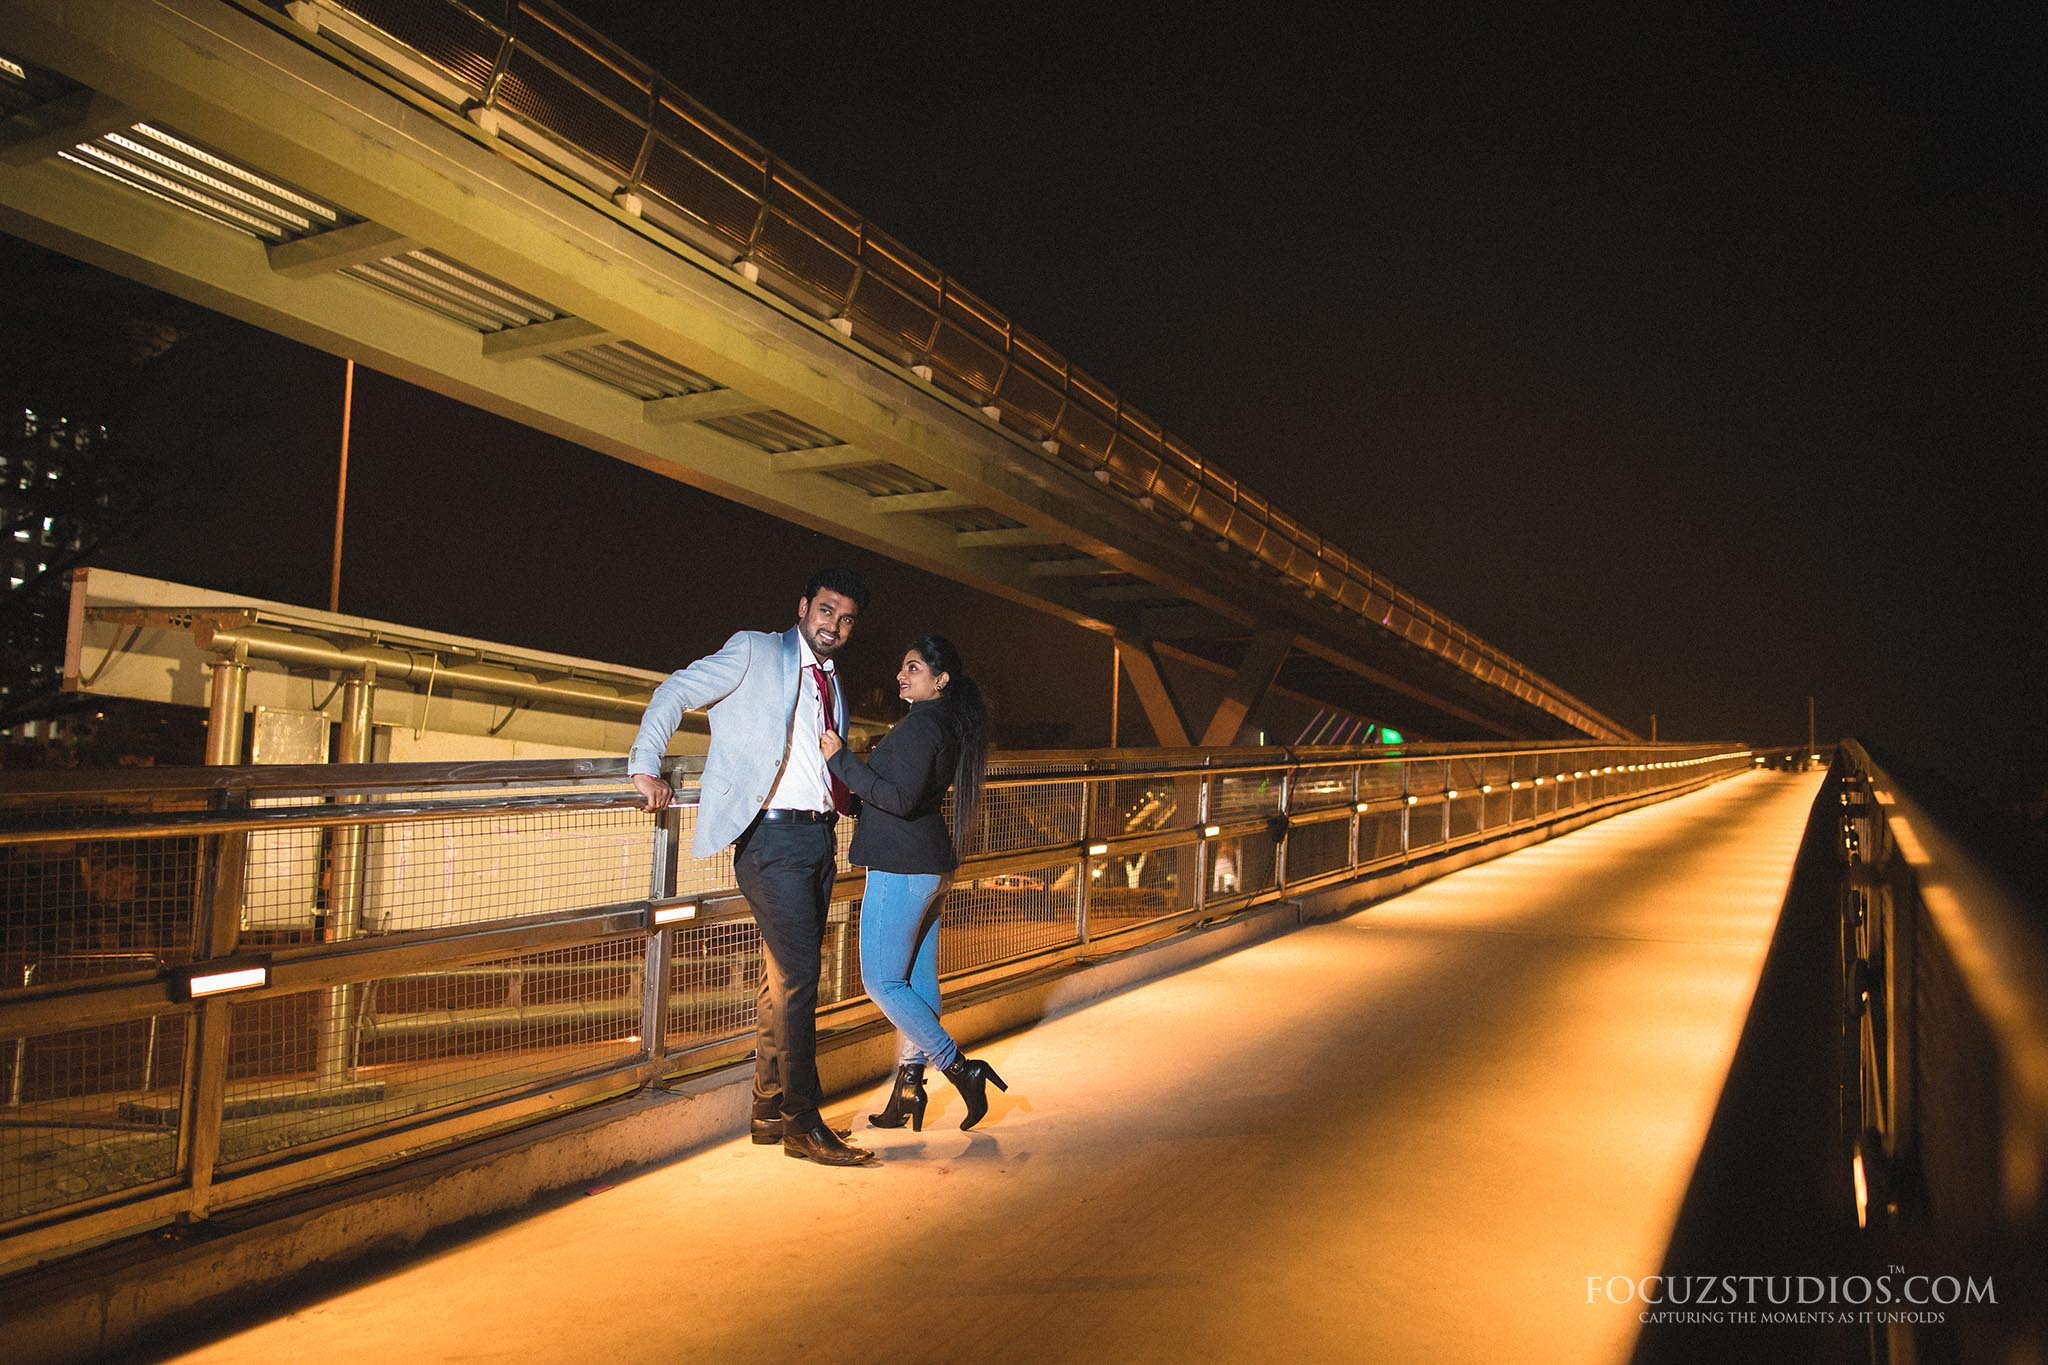 pre-wedding-shoot-night-chennai-focuz-studios-17